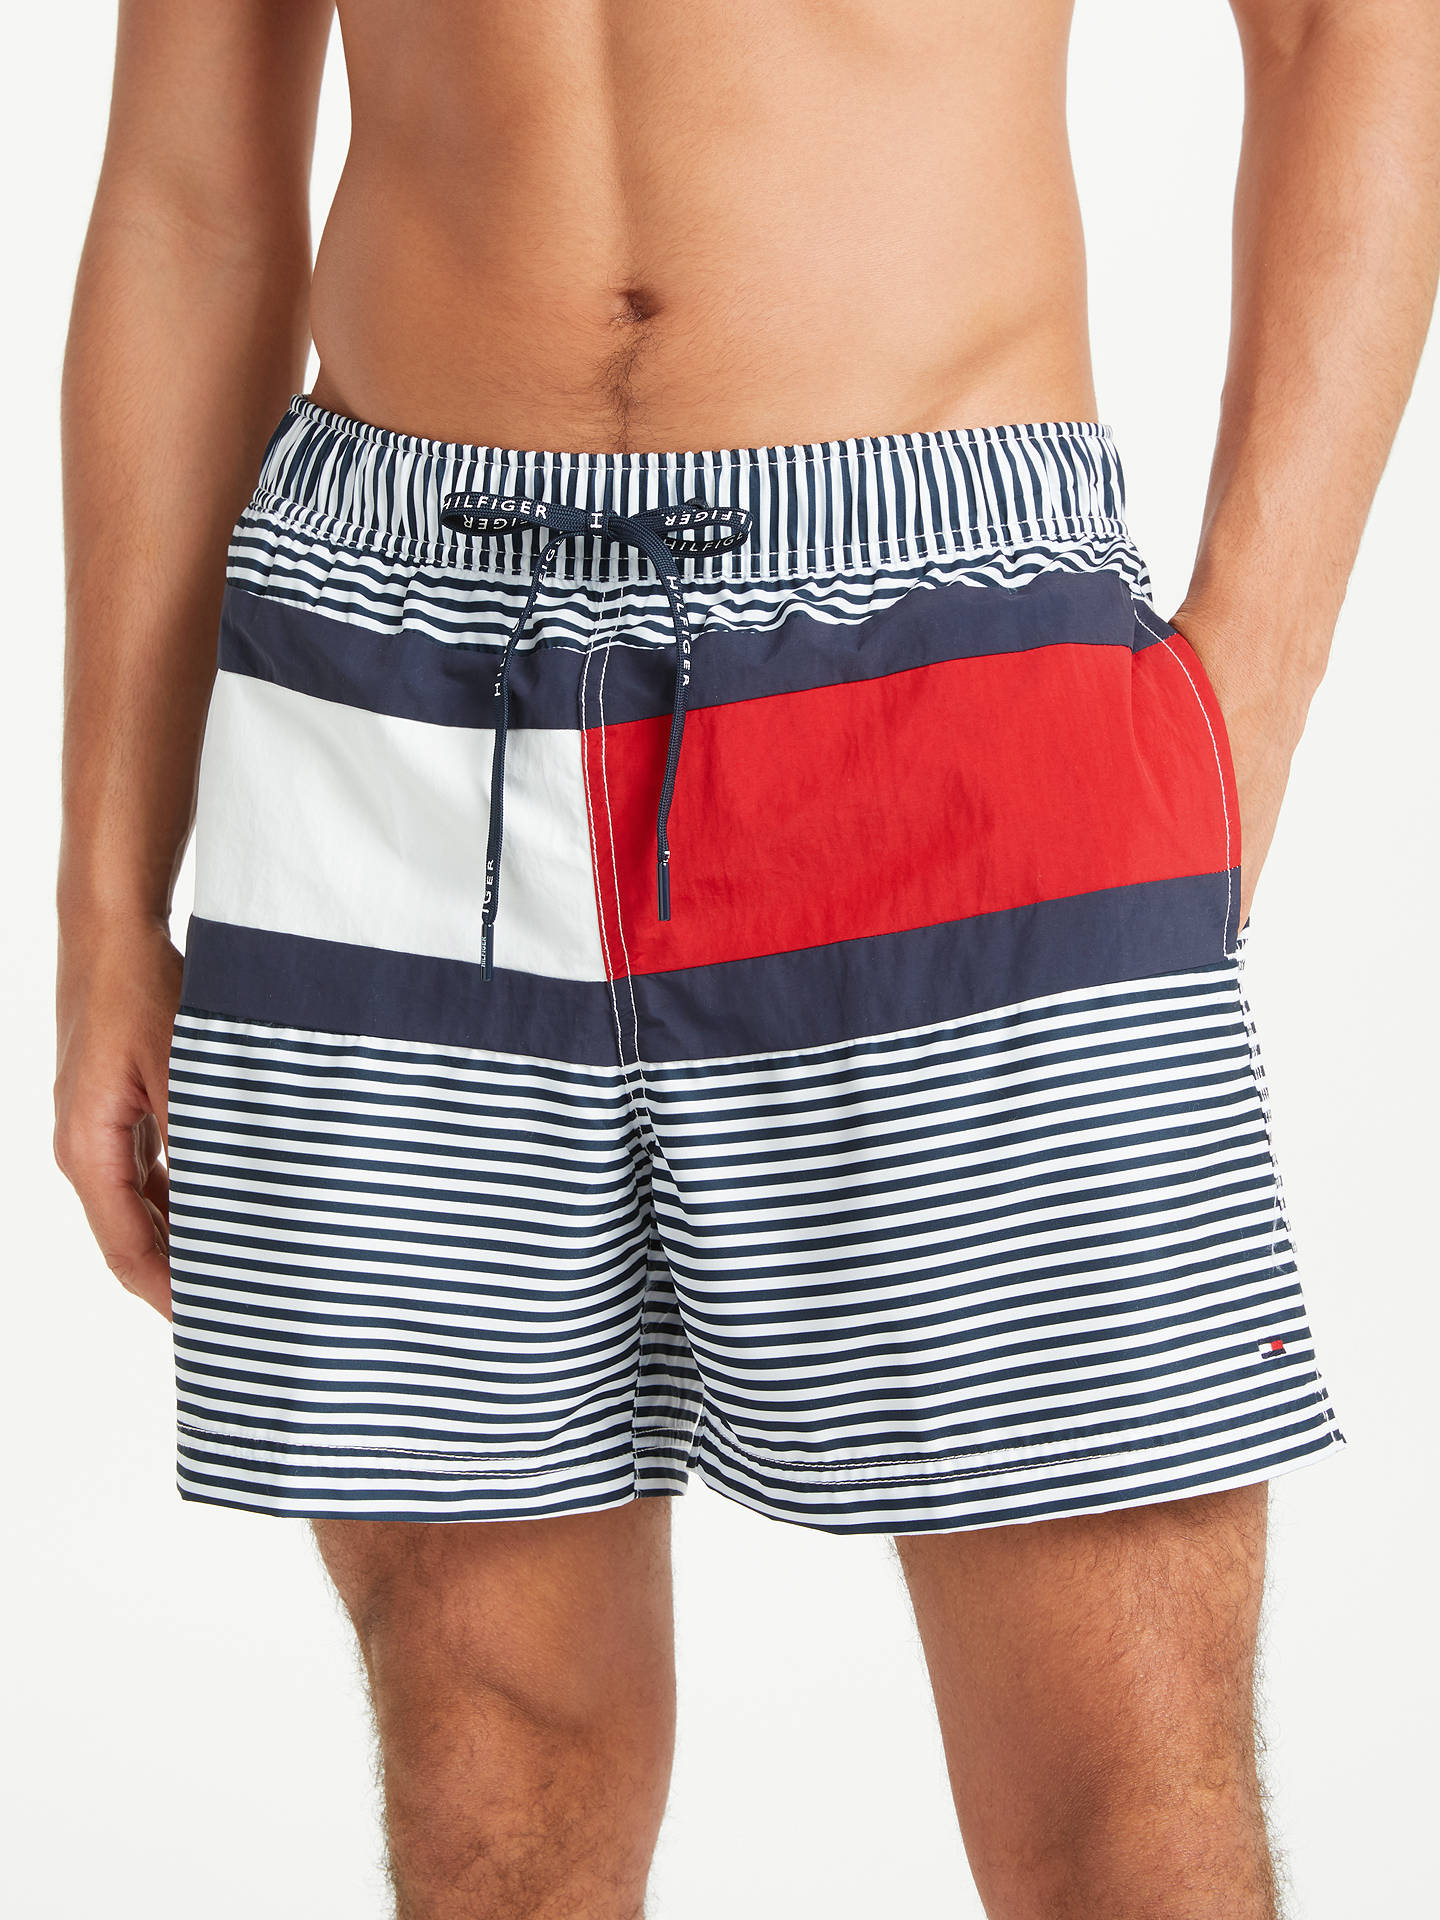 c492653c Buy Tommy Hilfiger Stripe Flag Swim Shorts, Navy/White, XL Online at  johnlewis